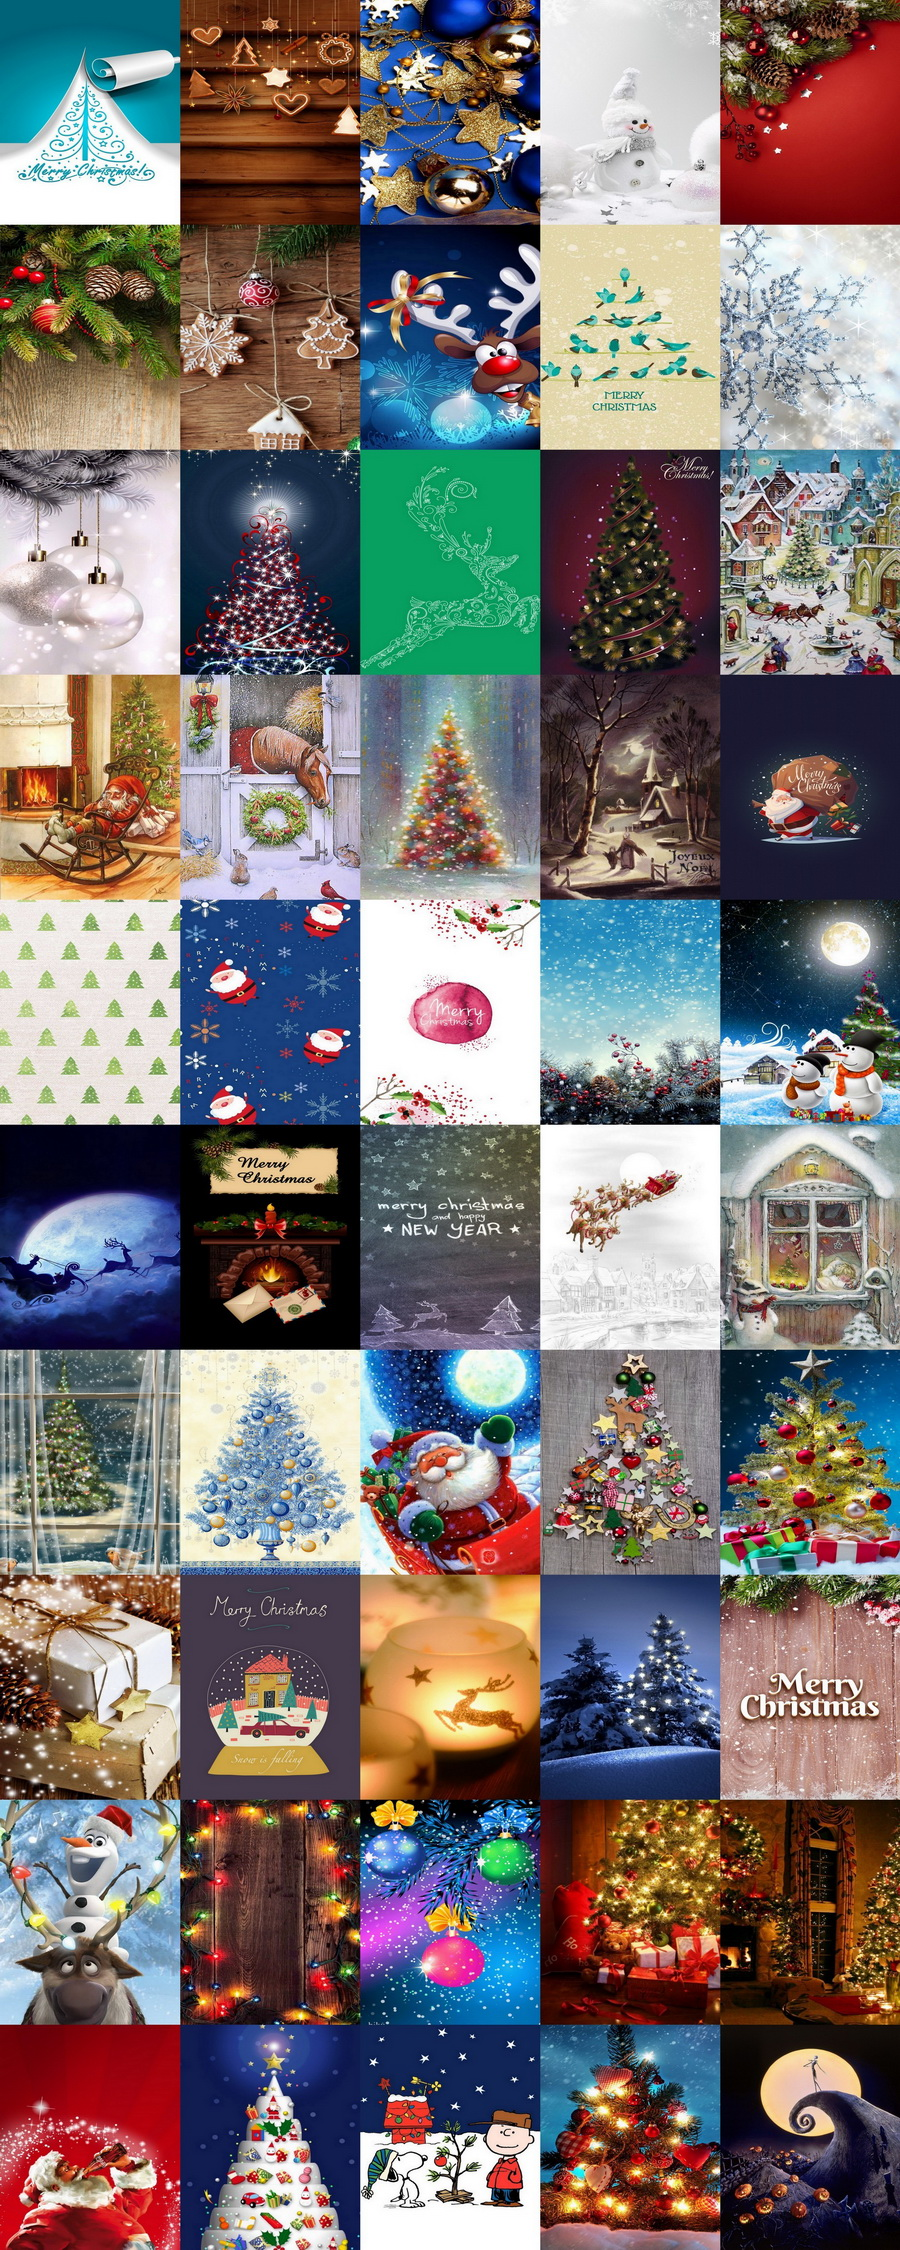 🎁 Bring Your Christmas Cards To Life: 100 Magical Christmas Backgrounds & Holiday Wallpapers (51-100)